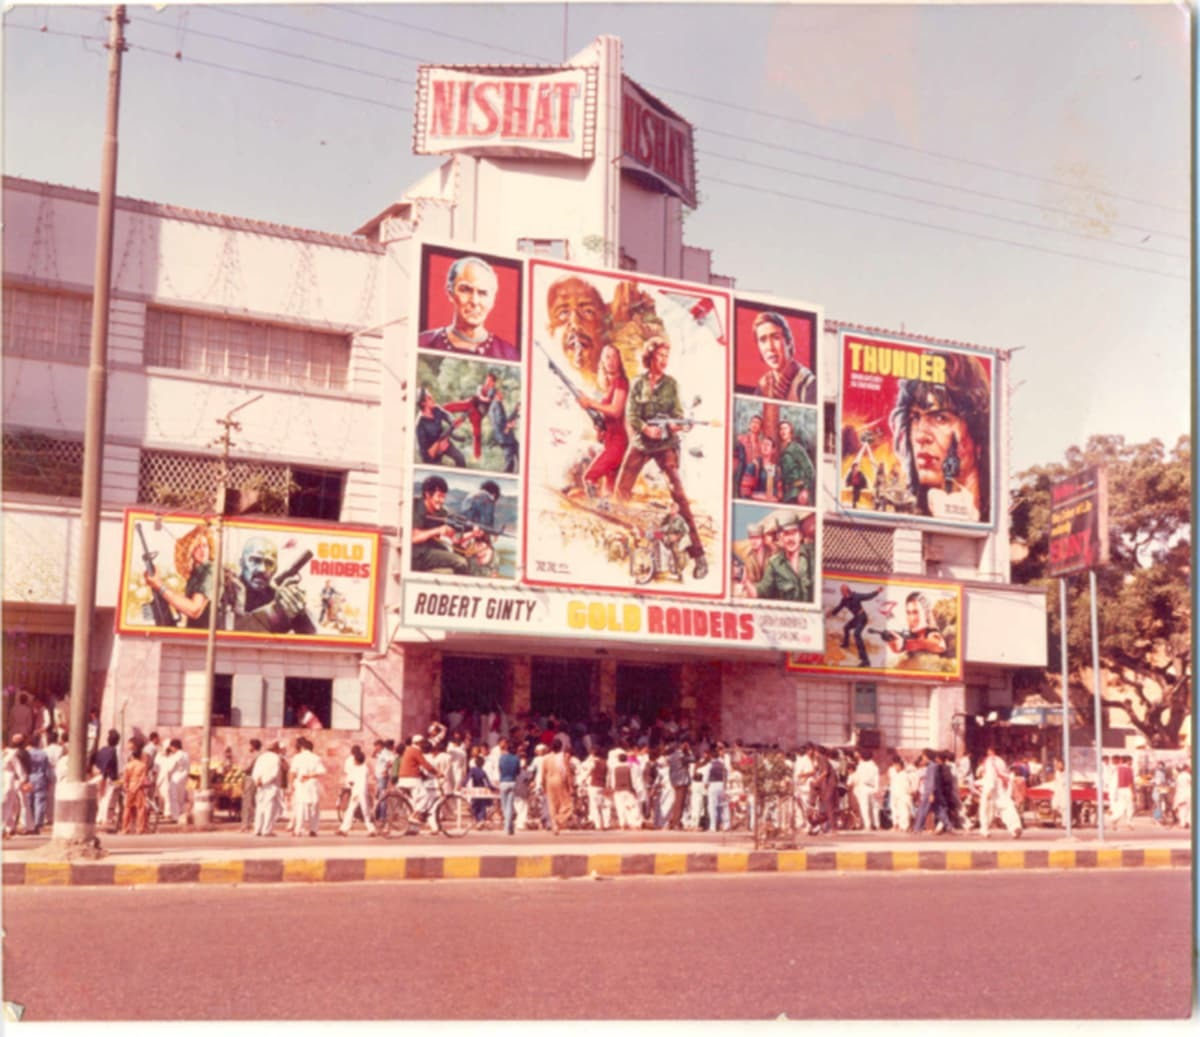 lahore cinema and childhood how i long for matinee